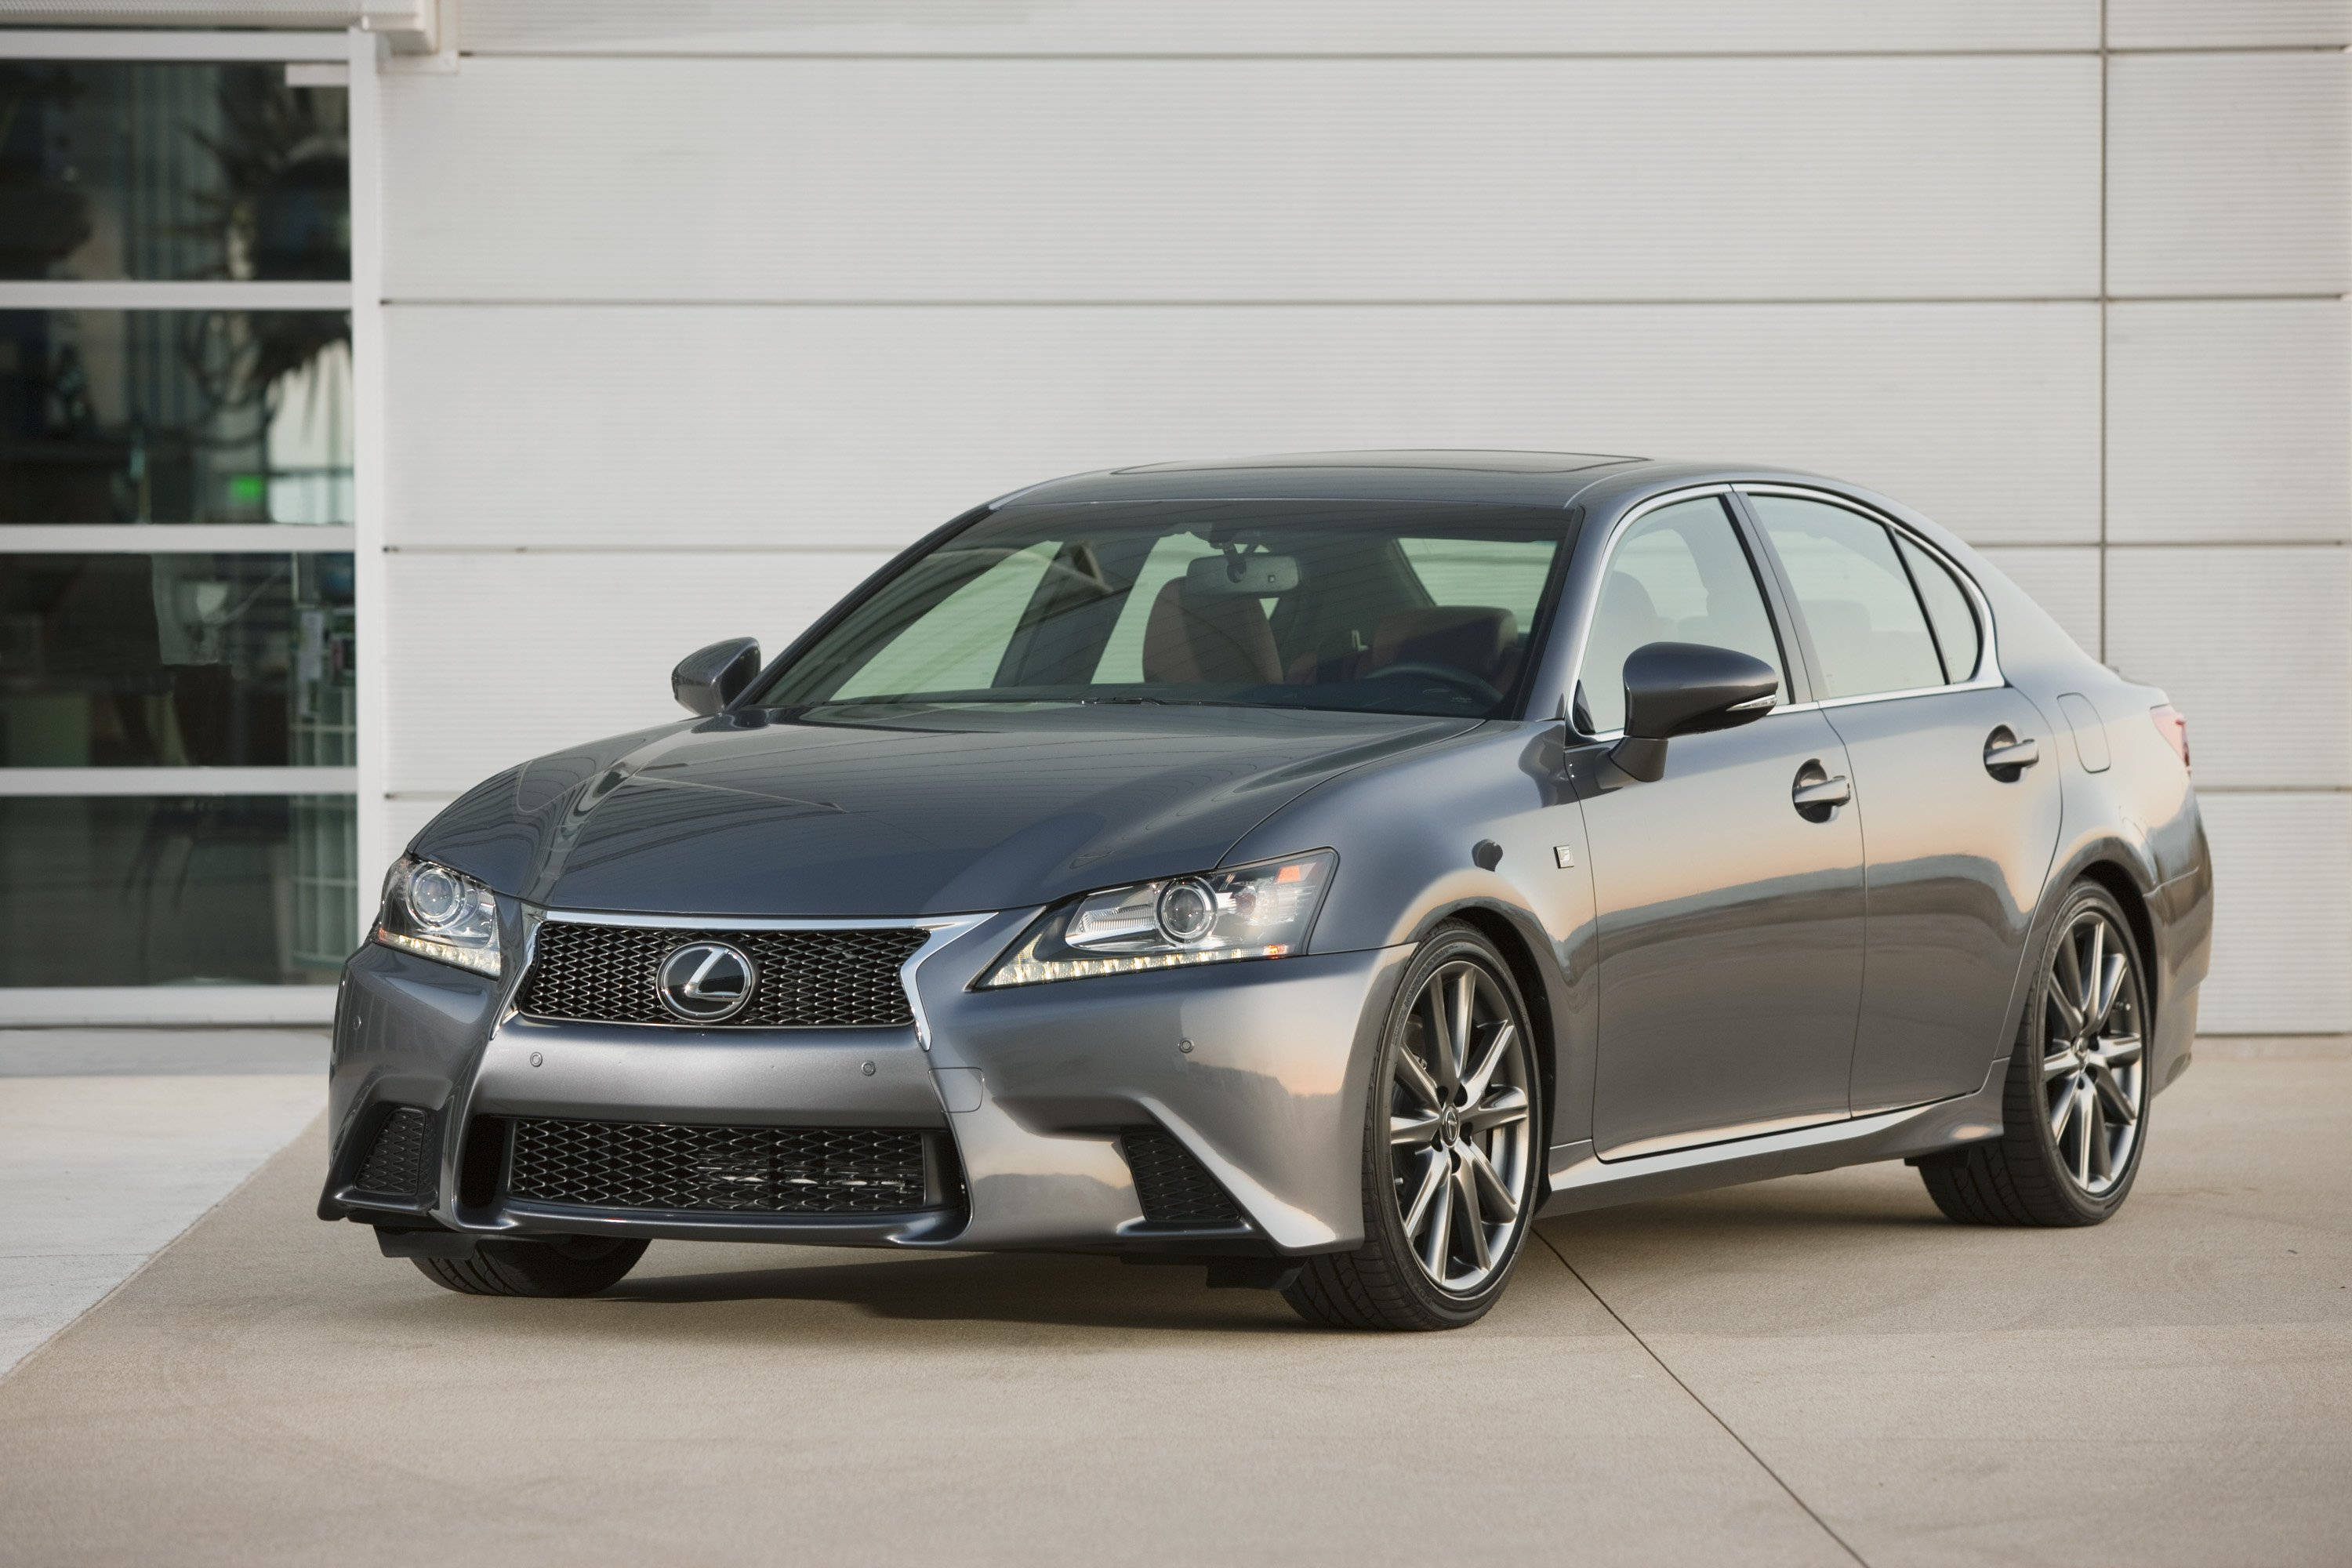 Road Tested Lexus GS350 F Sport and GS450h Speed Sport Life